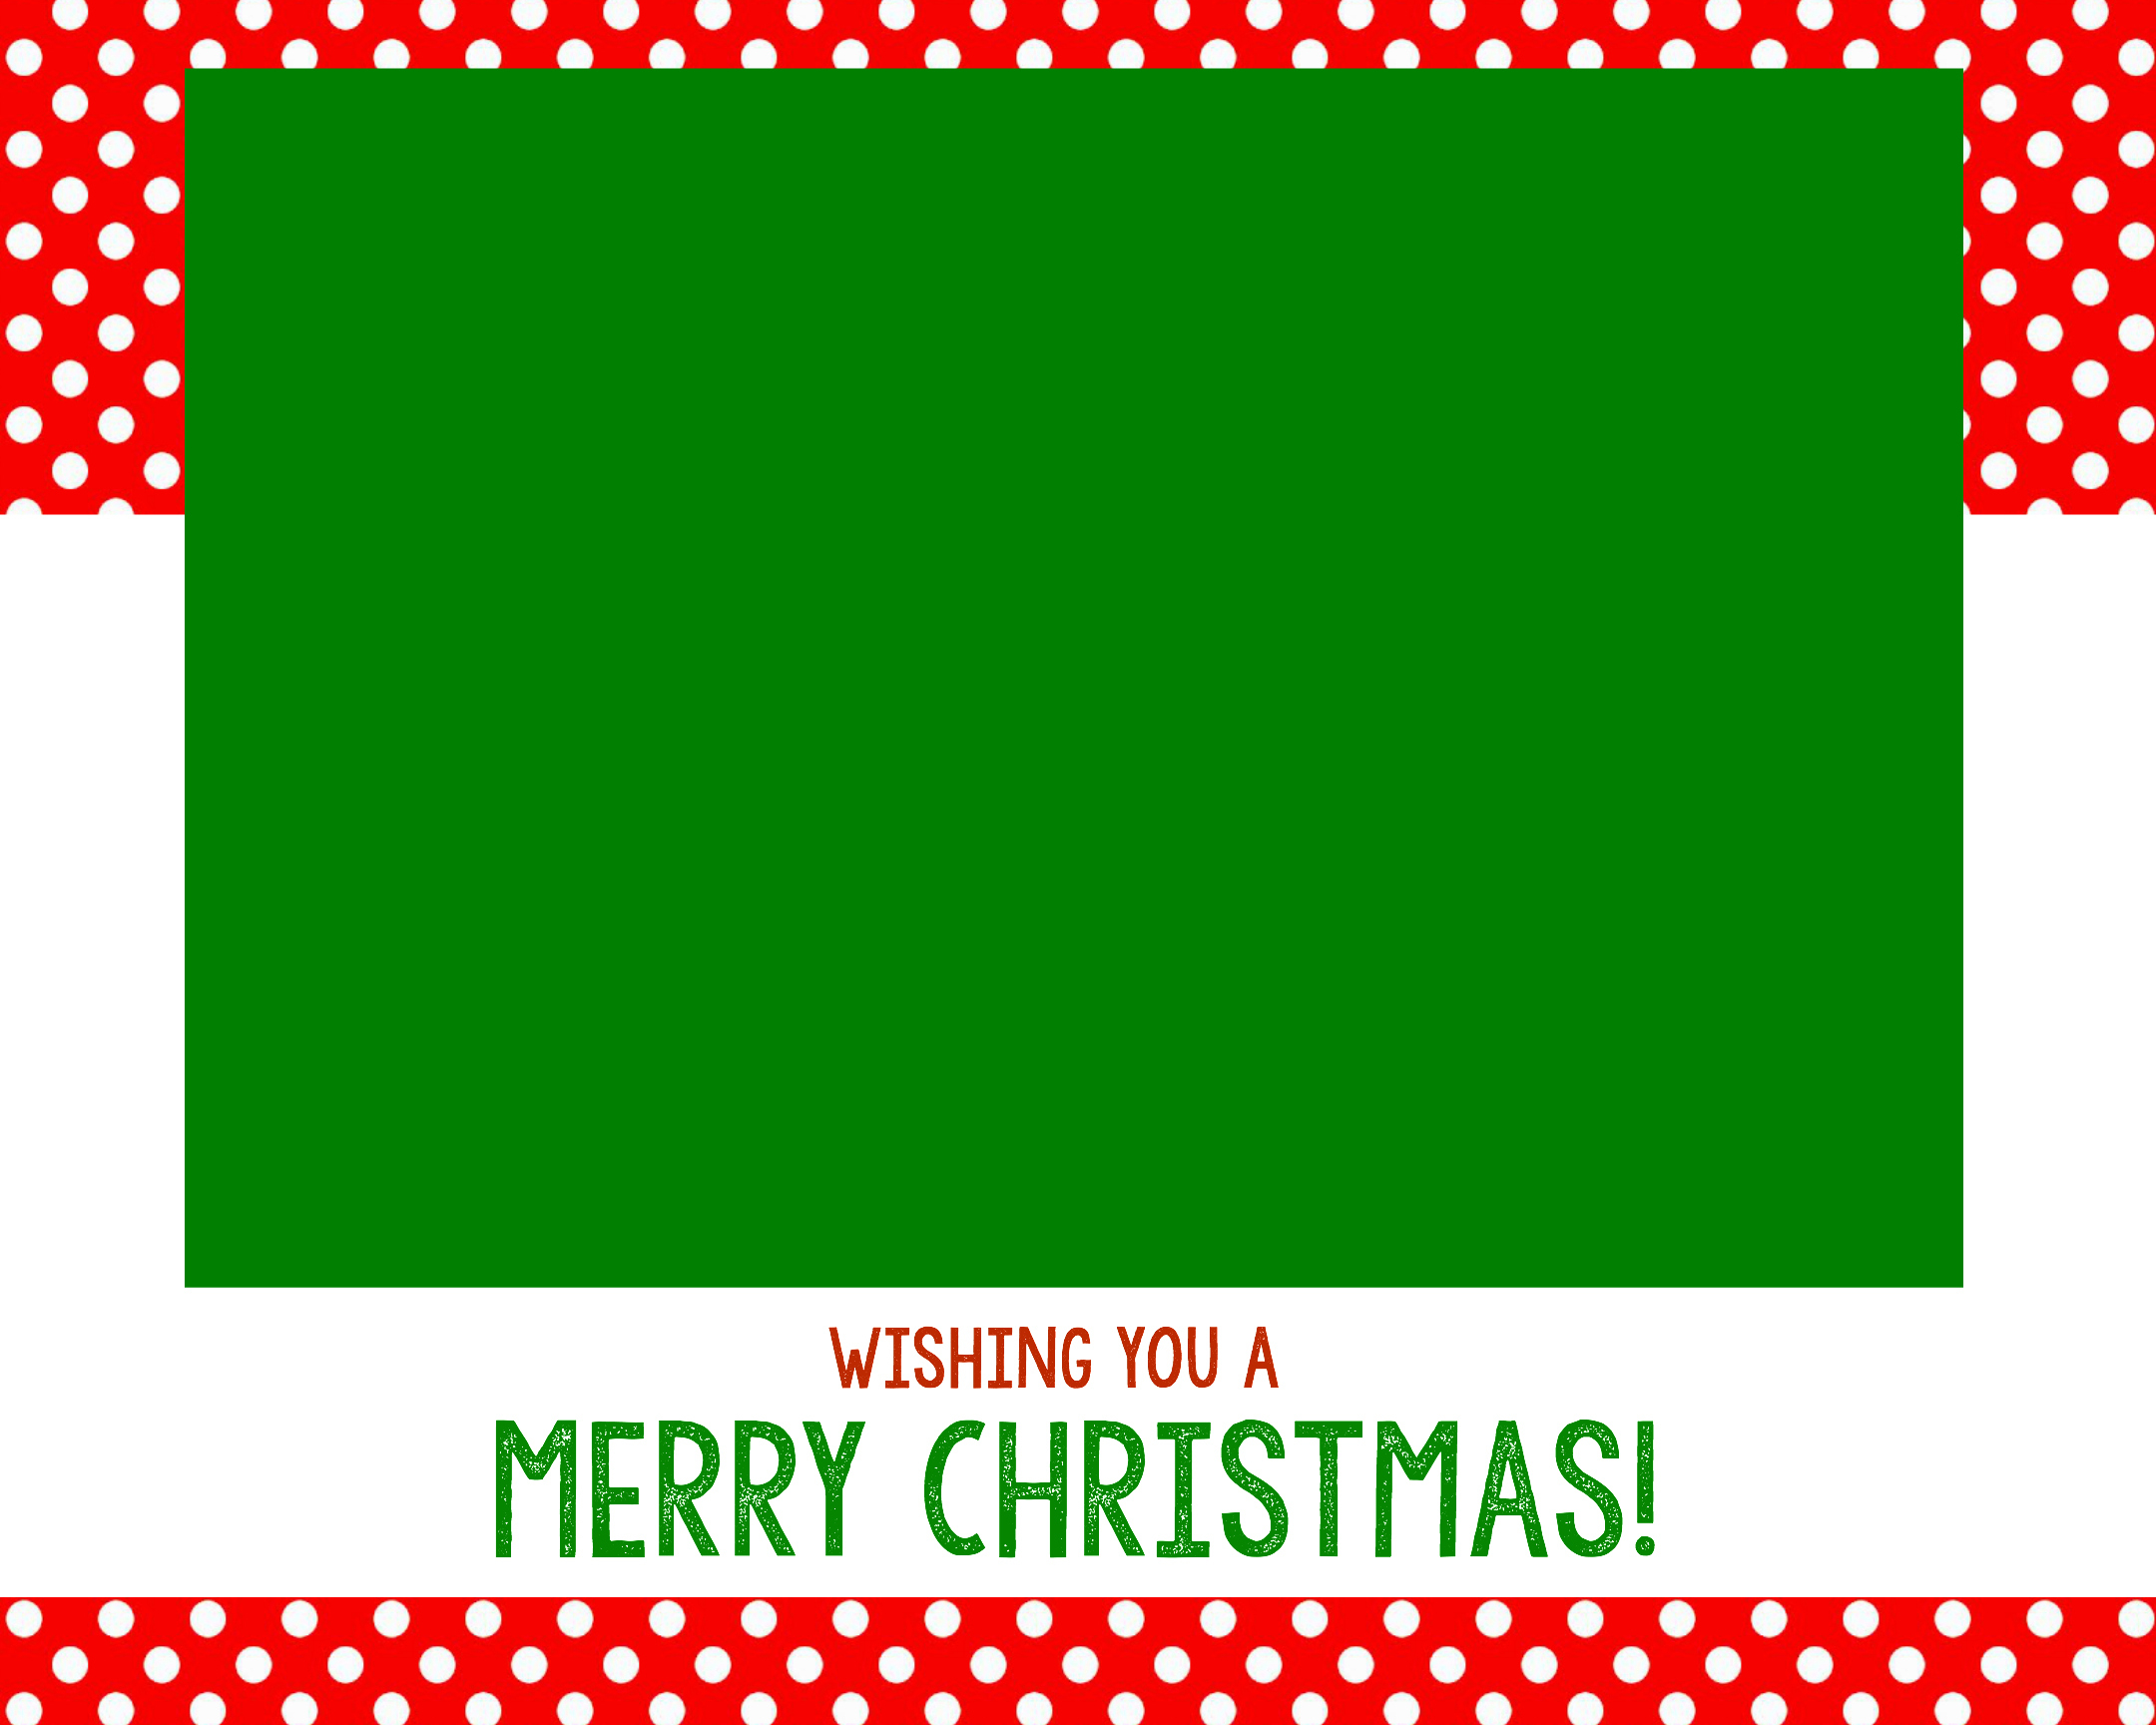 Christmas Photo Card Templates | Texas Vet - Free Online Christmas Photo Card Maker Printable